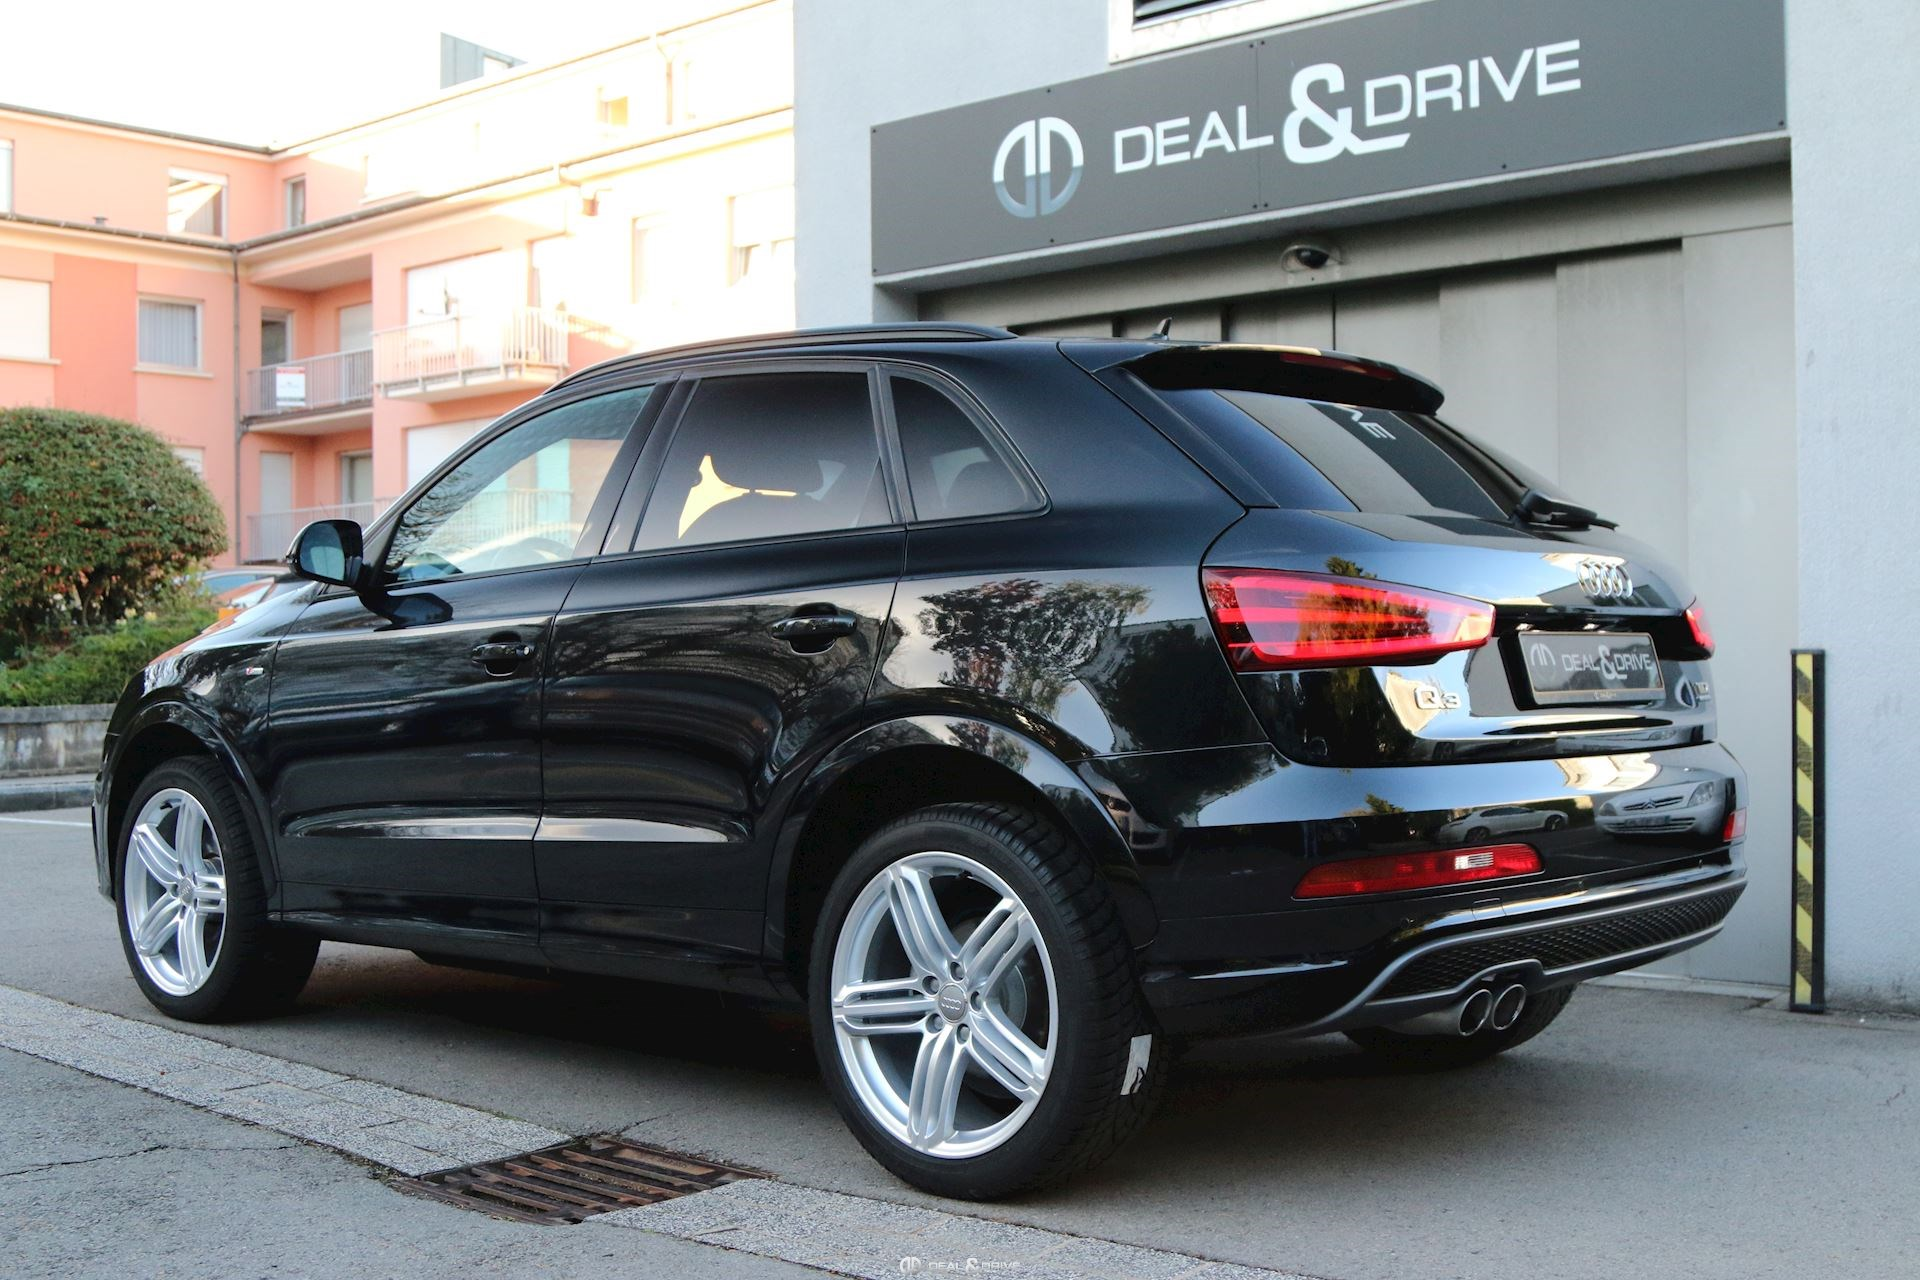 audi q3 2 0 tdi 140 quattro s line competition s tronic deal drive. Black Bedroom Furniture Sets. Home Design Ideas